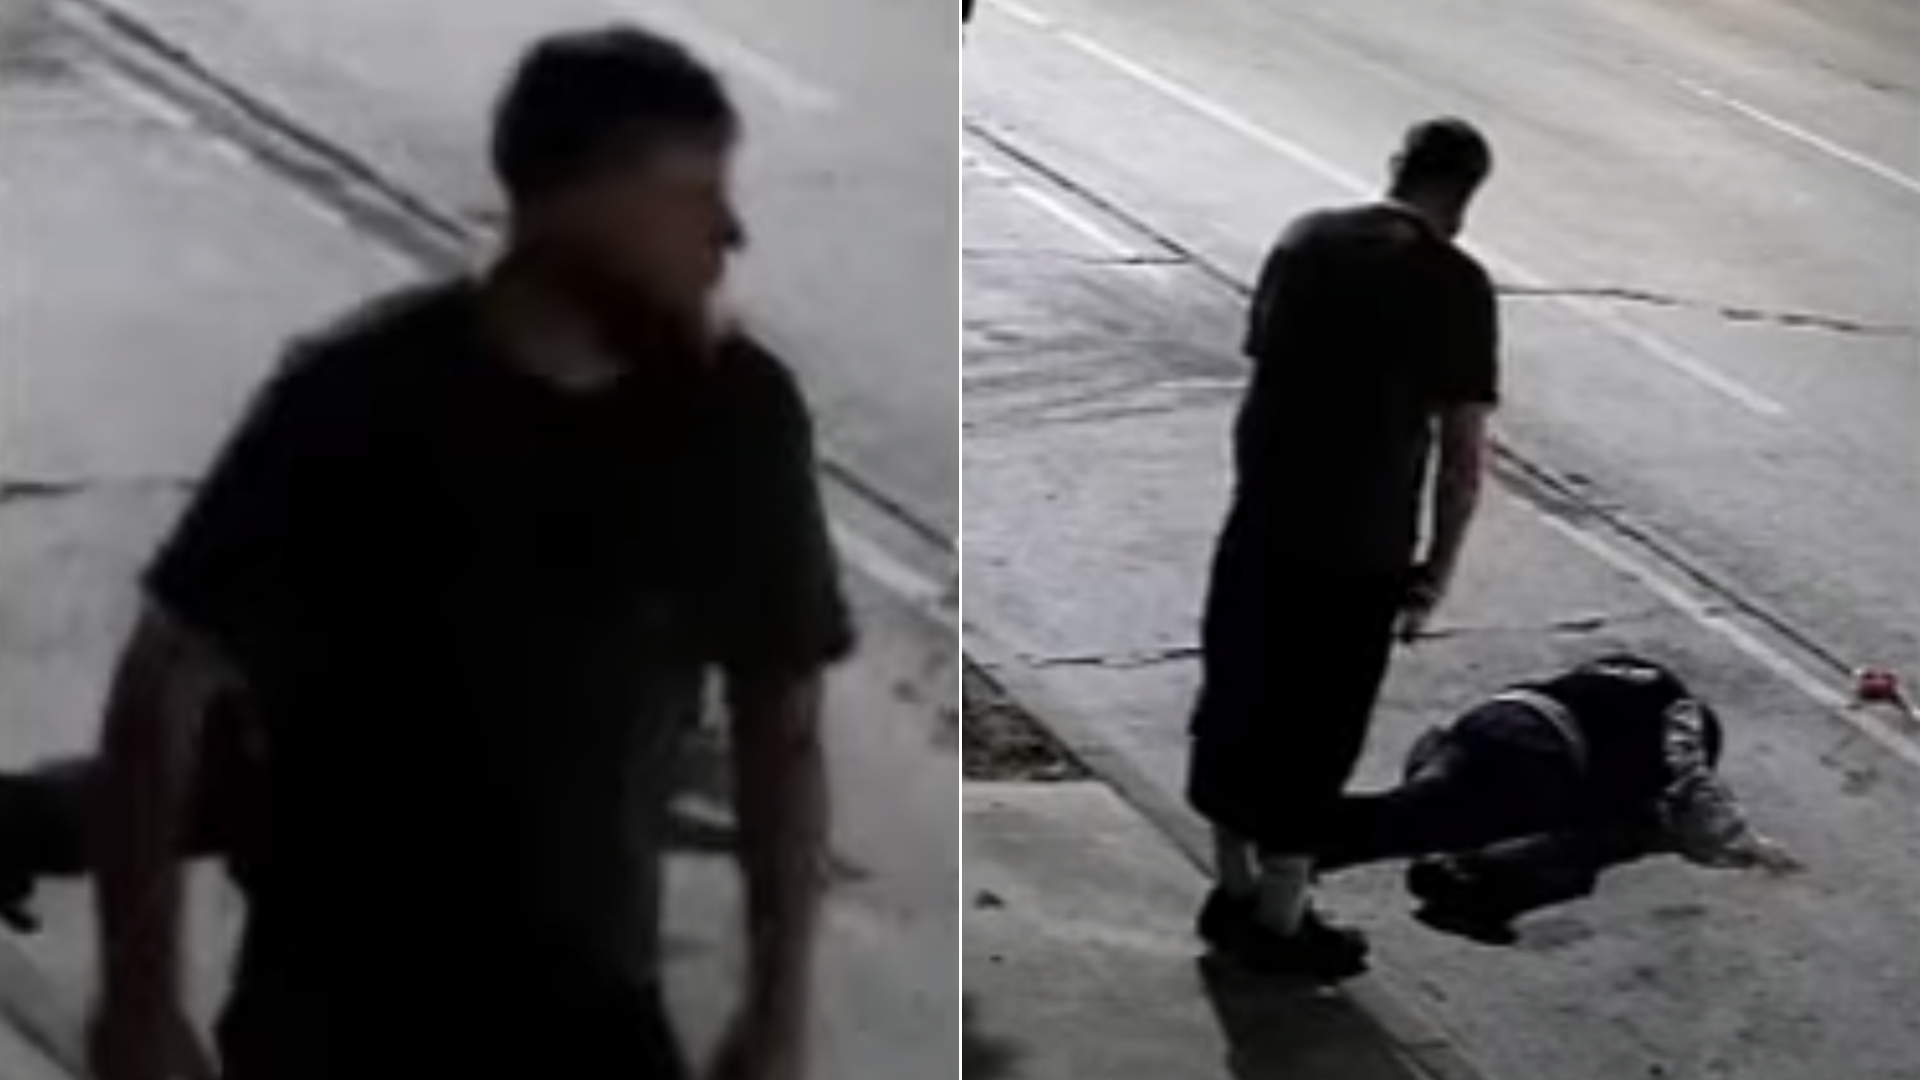 Images of a man accused of assaulting an Asian American woman in Culver City in a possible hate crime, with the victim on the ground at right, are seen in stills from surveillance video released June 15, 2021, by the Culver City Police Department.